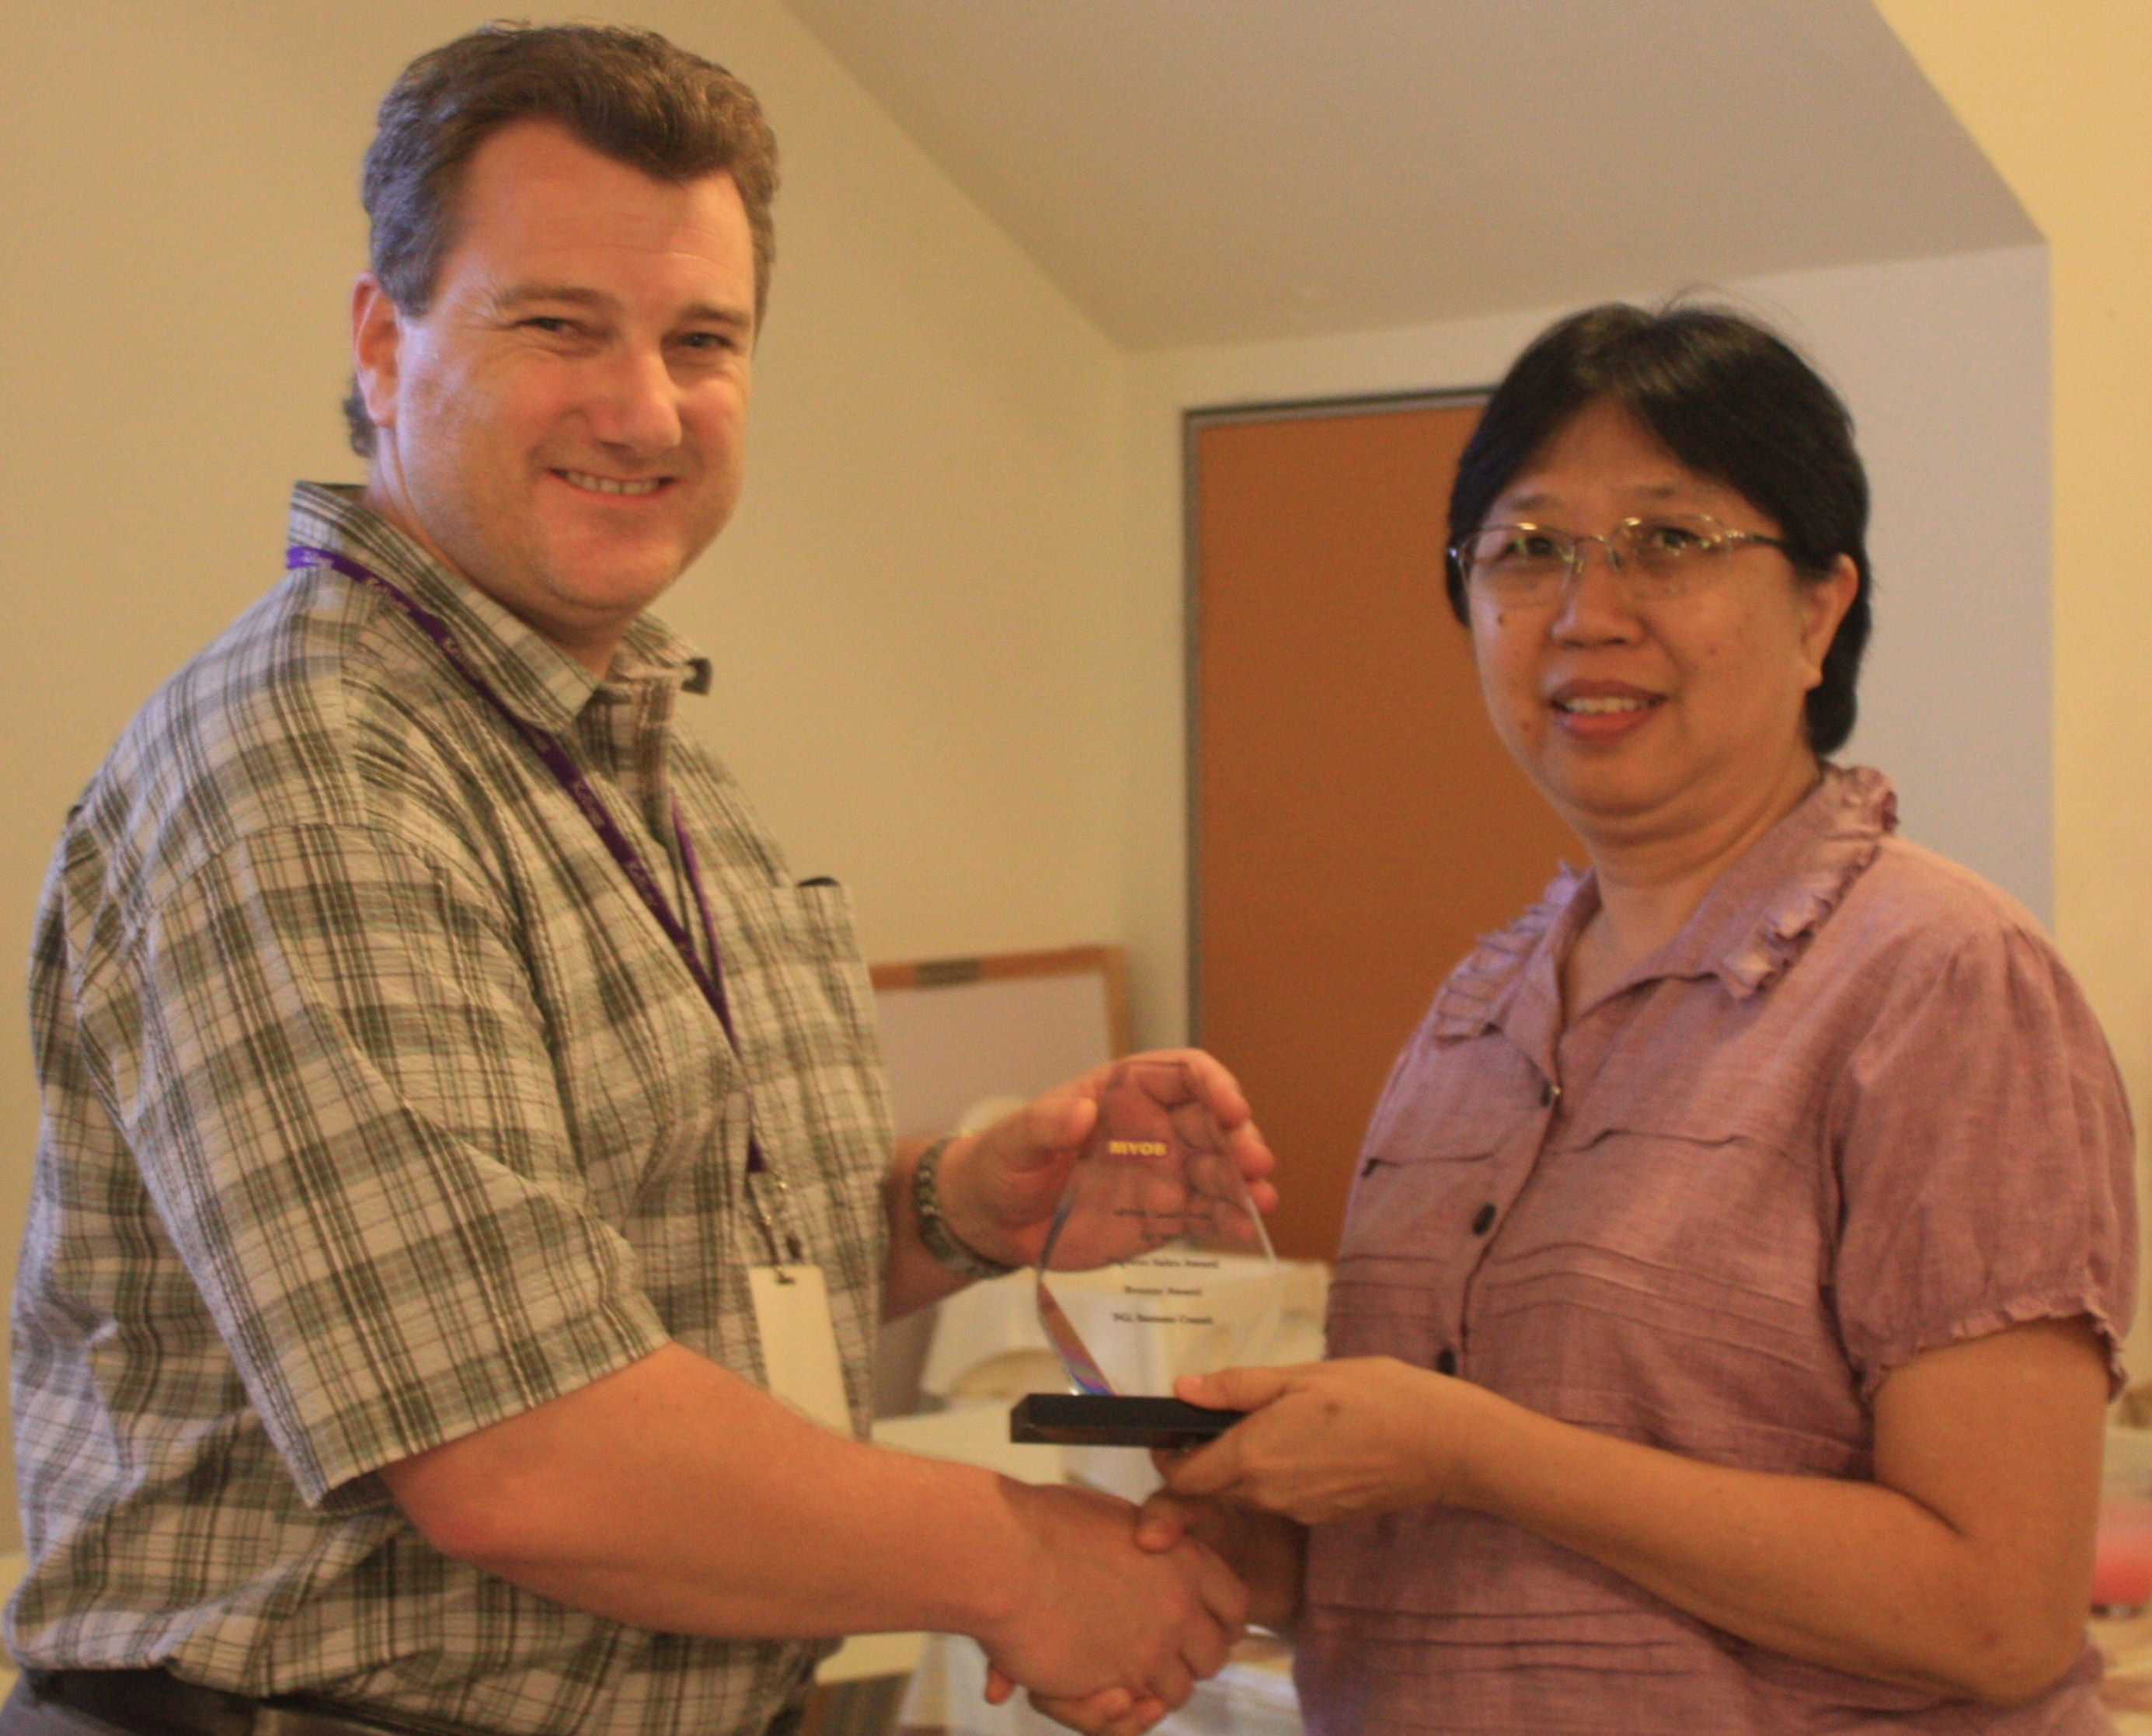 MYOB Top sales award 2011